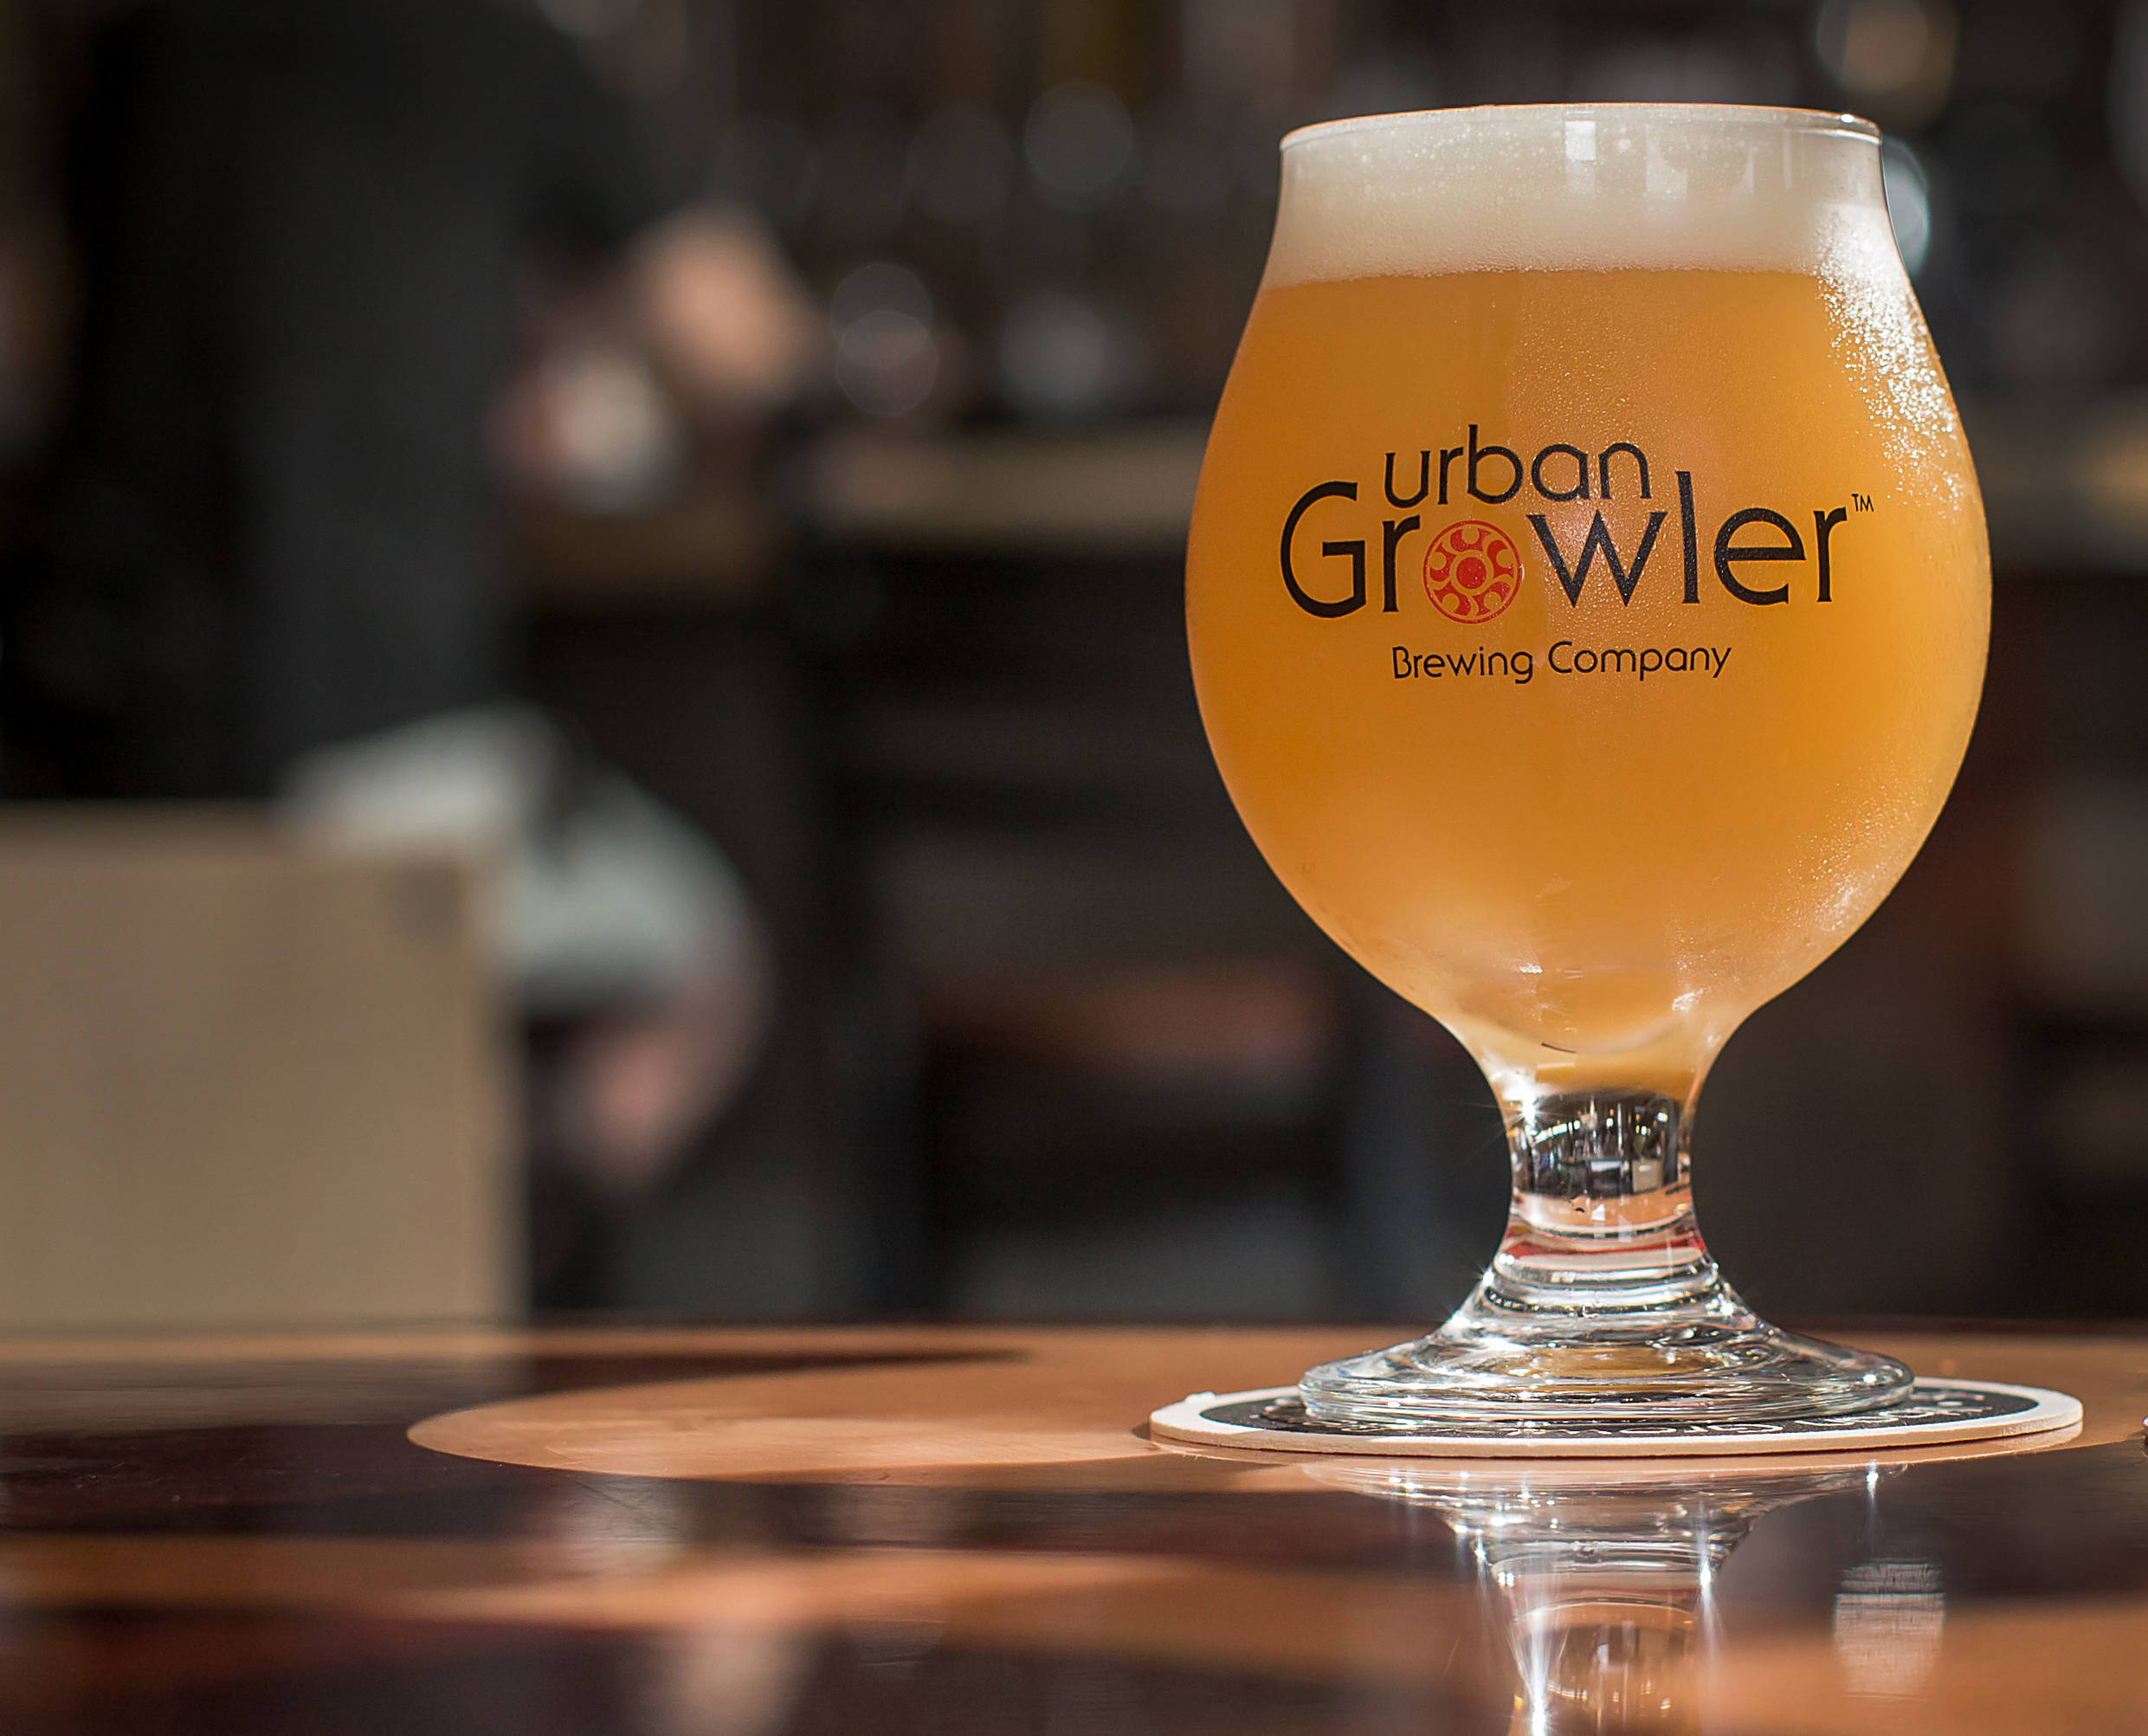 Urban Growler beer